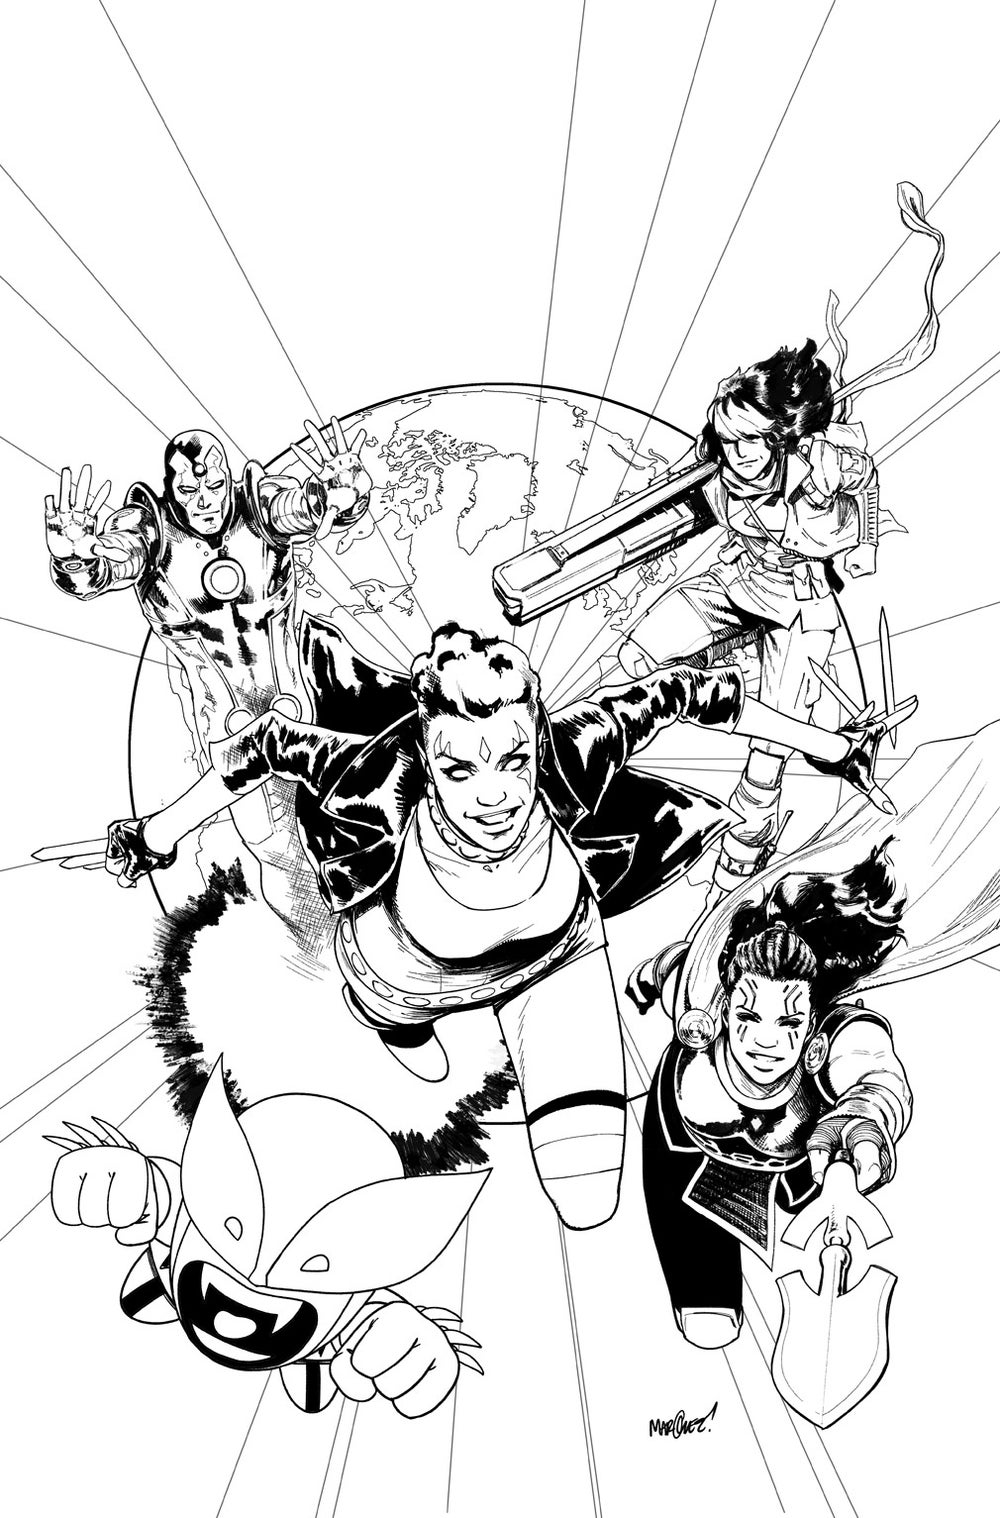 Image of EXILES #1 COVER ARTIST'S PROOF